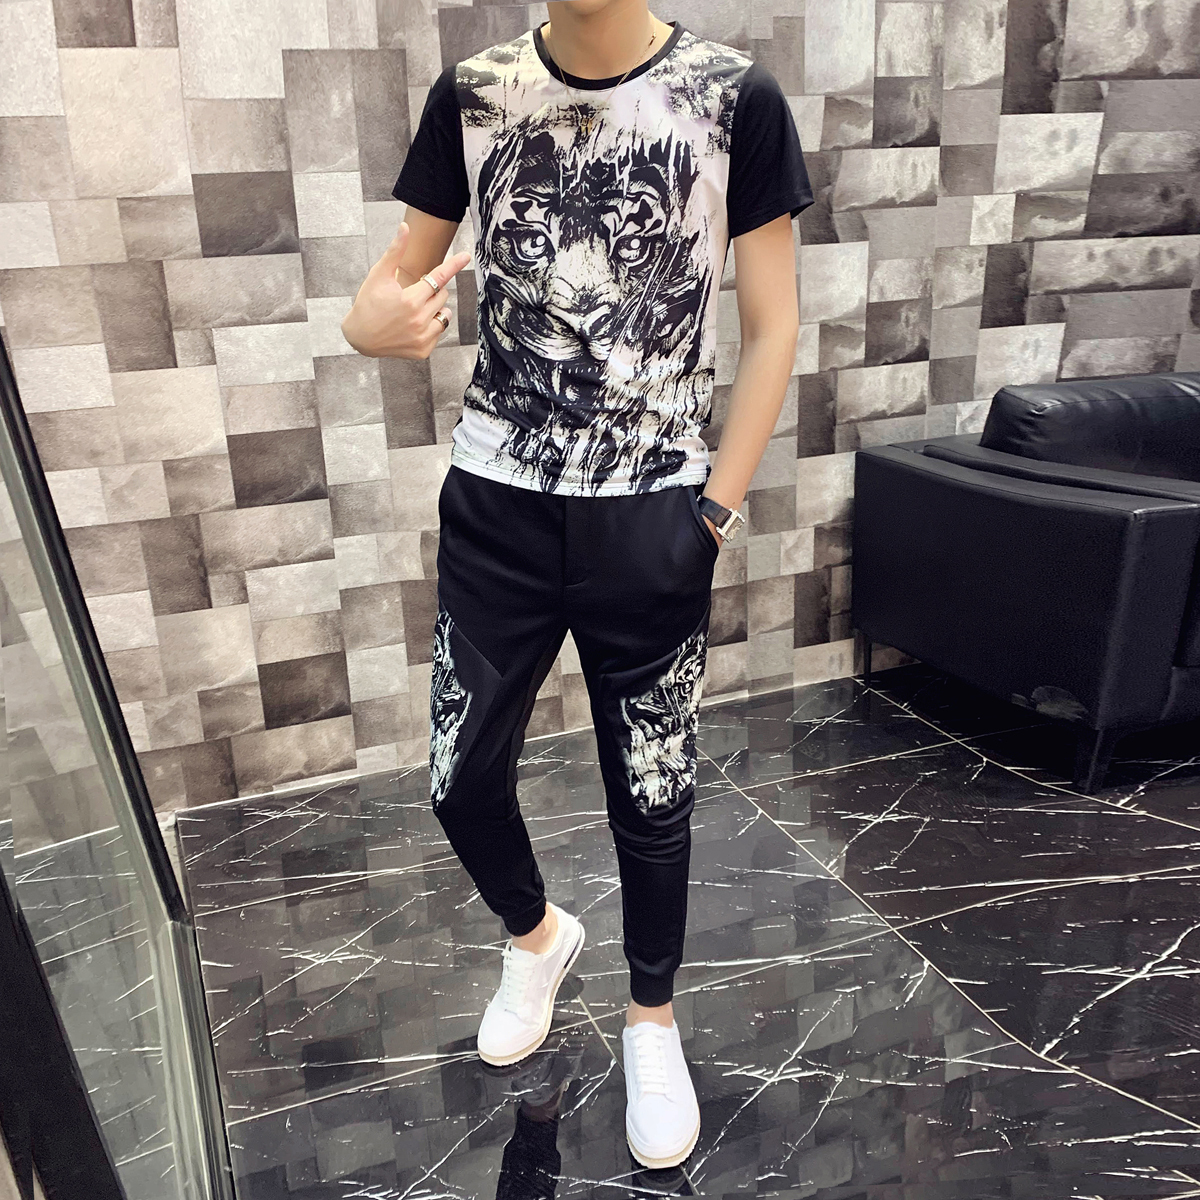 Spring High Quality Tracksuit Top And Pants Men Animal Print Short Sleeve T Shirt Two Piece Set Men Slim Fit Outfits Men Set